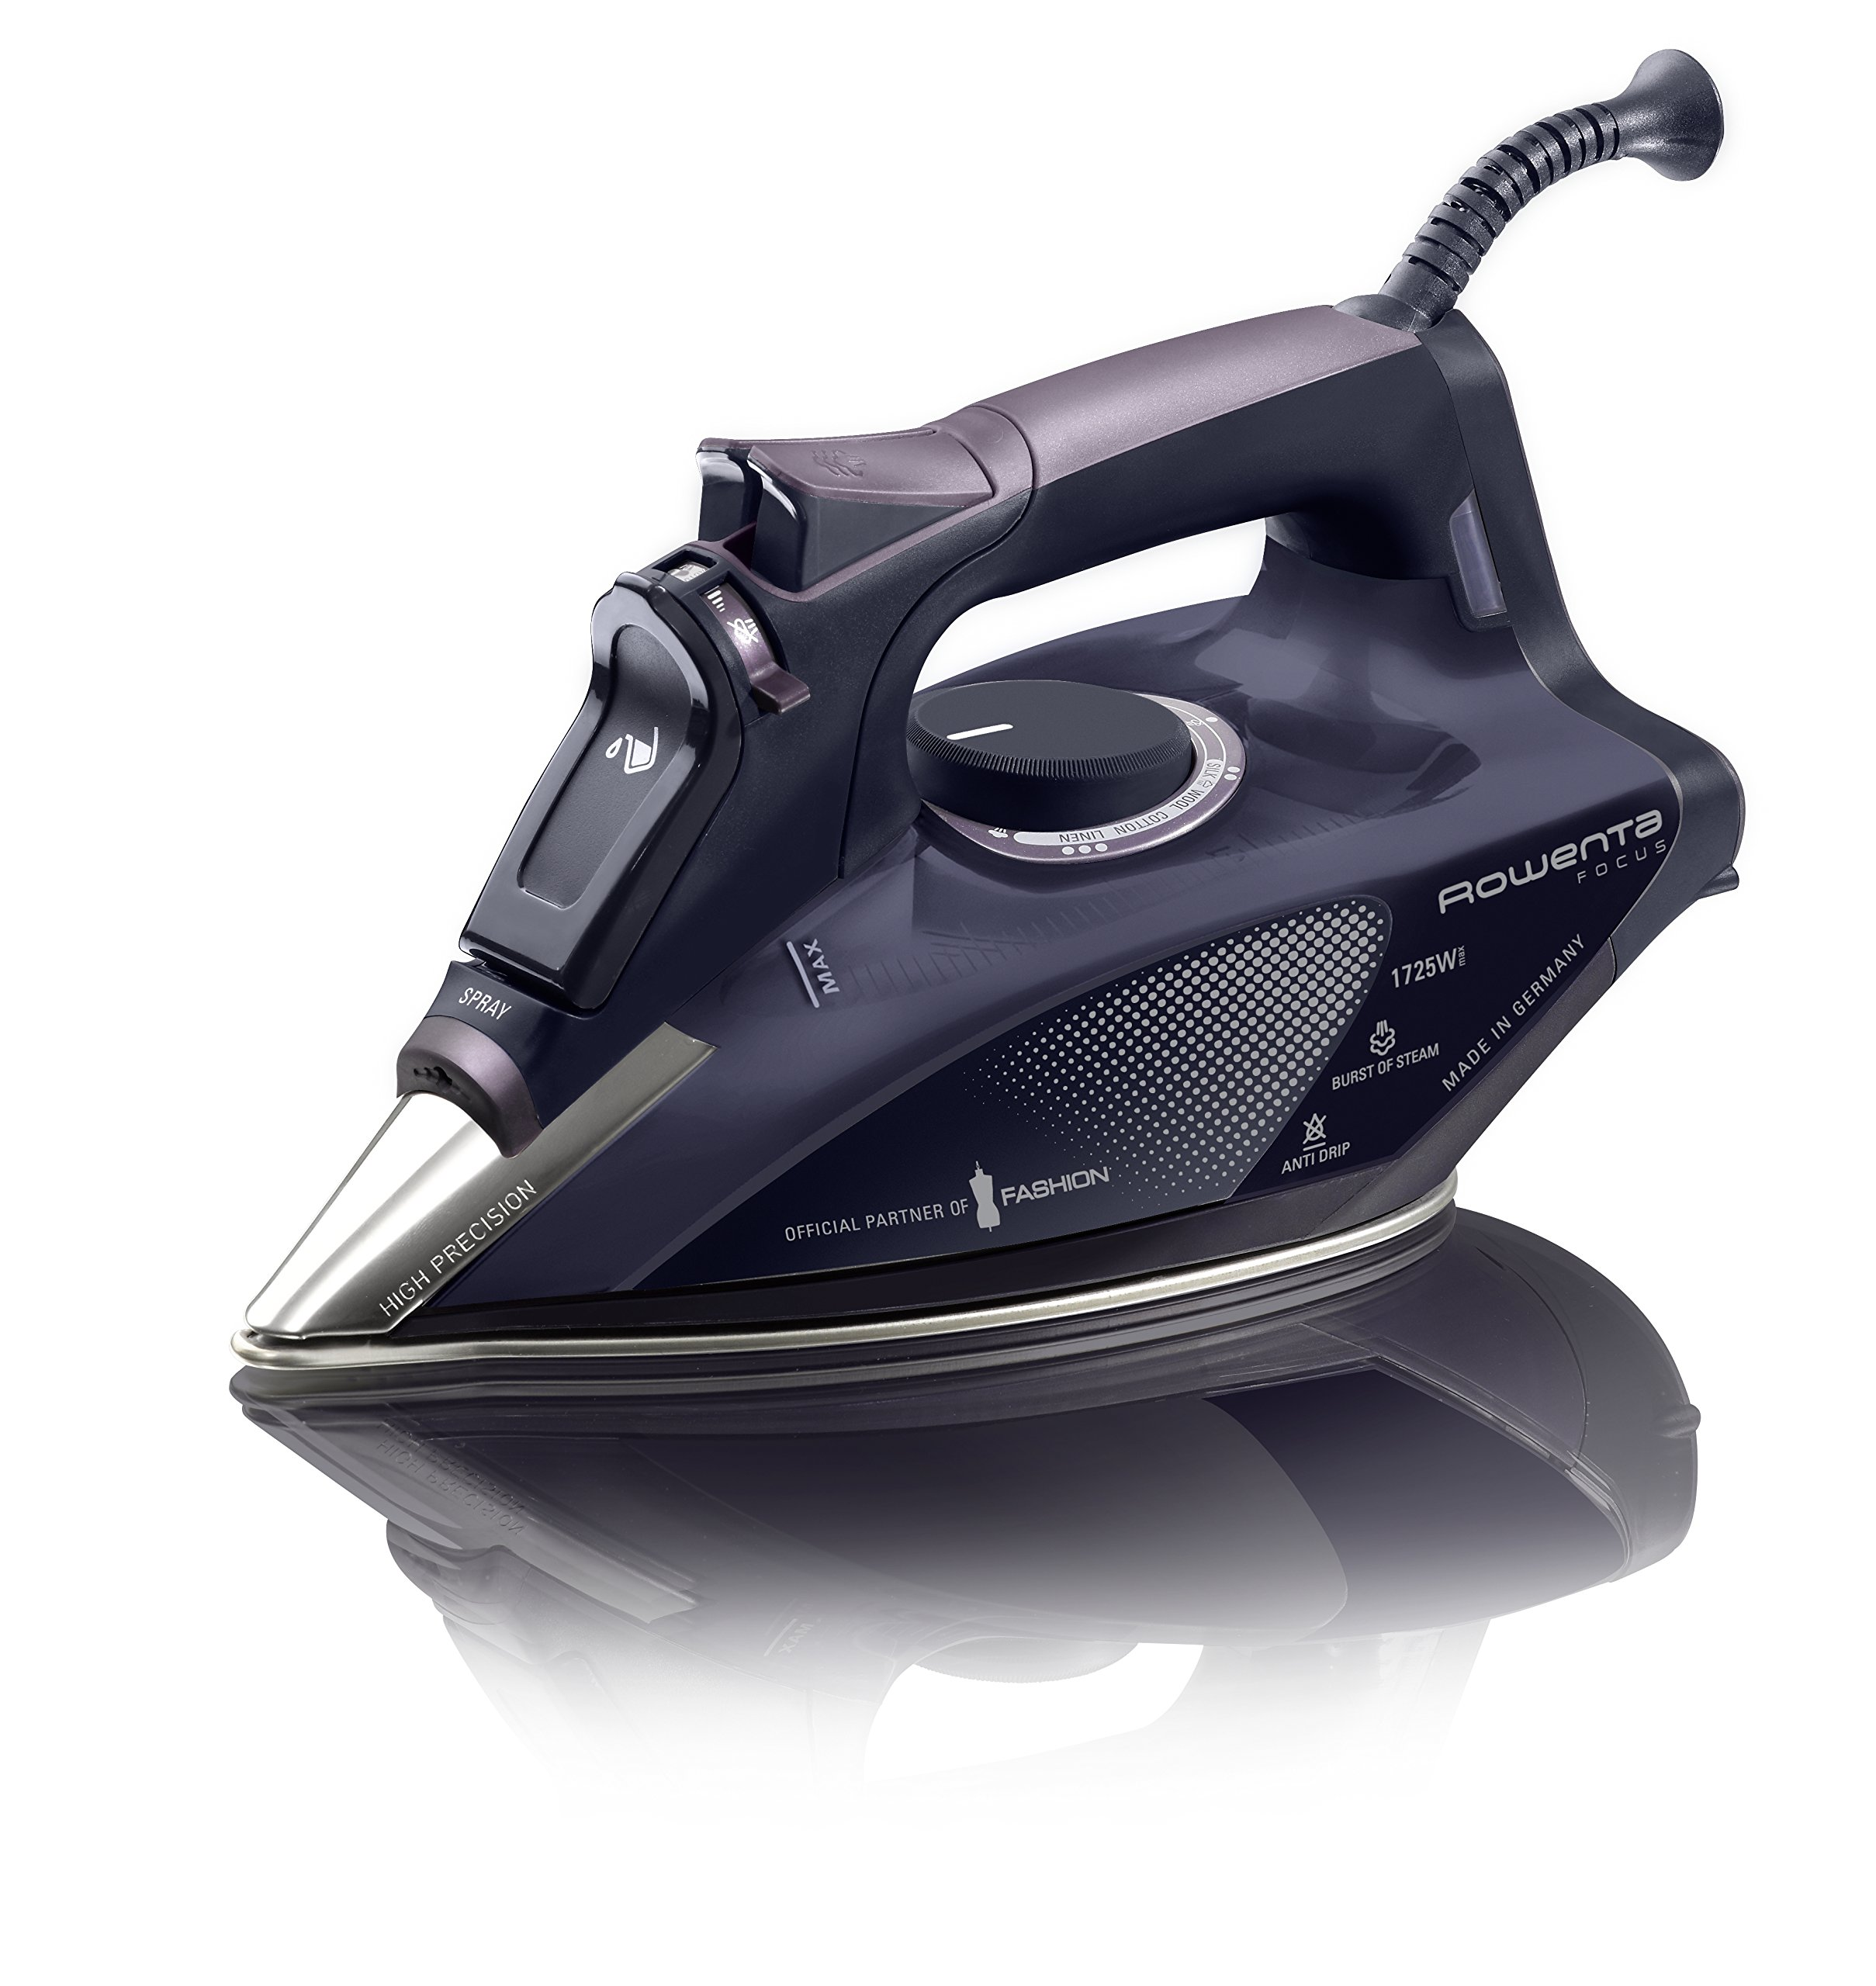 Rowenta DW5197 Partner of Fashion Focus Steam 1725-Watt Micro Steam Iron with Stainless Steel Soleplate, 400-Hole, Purple by Rowenta